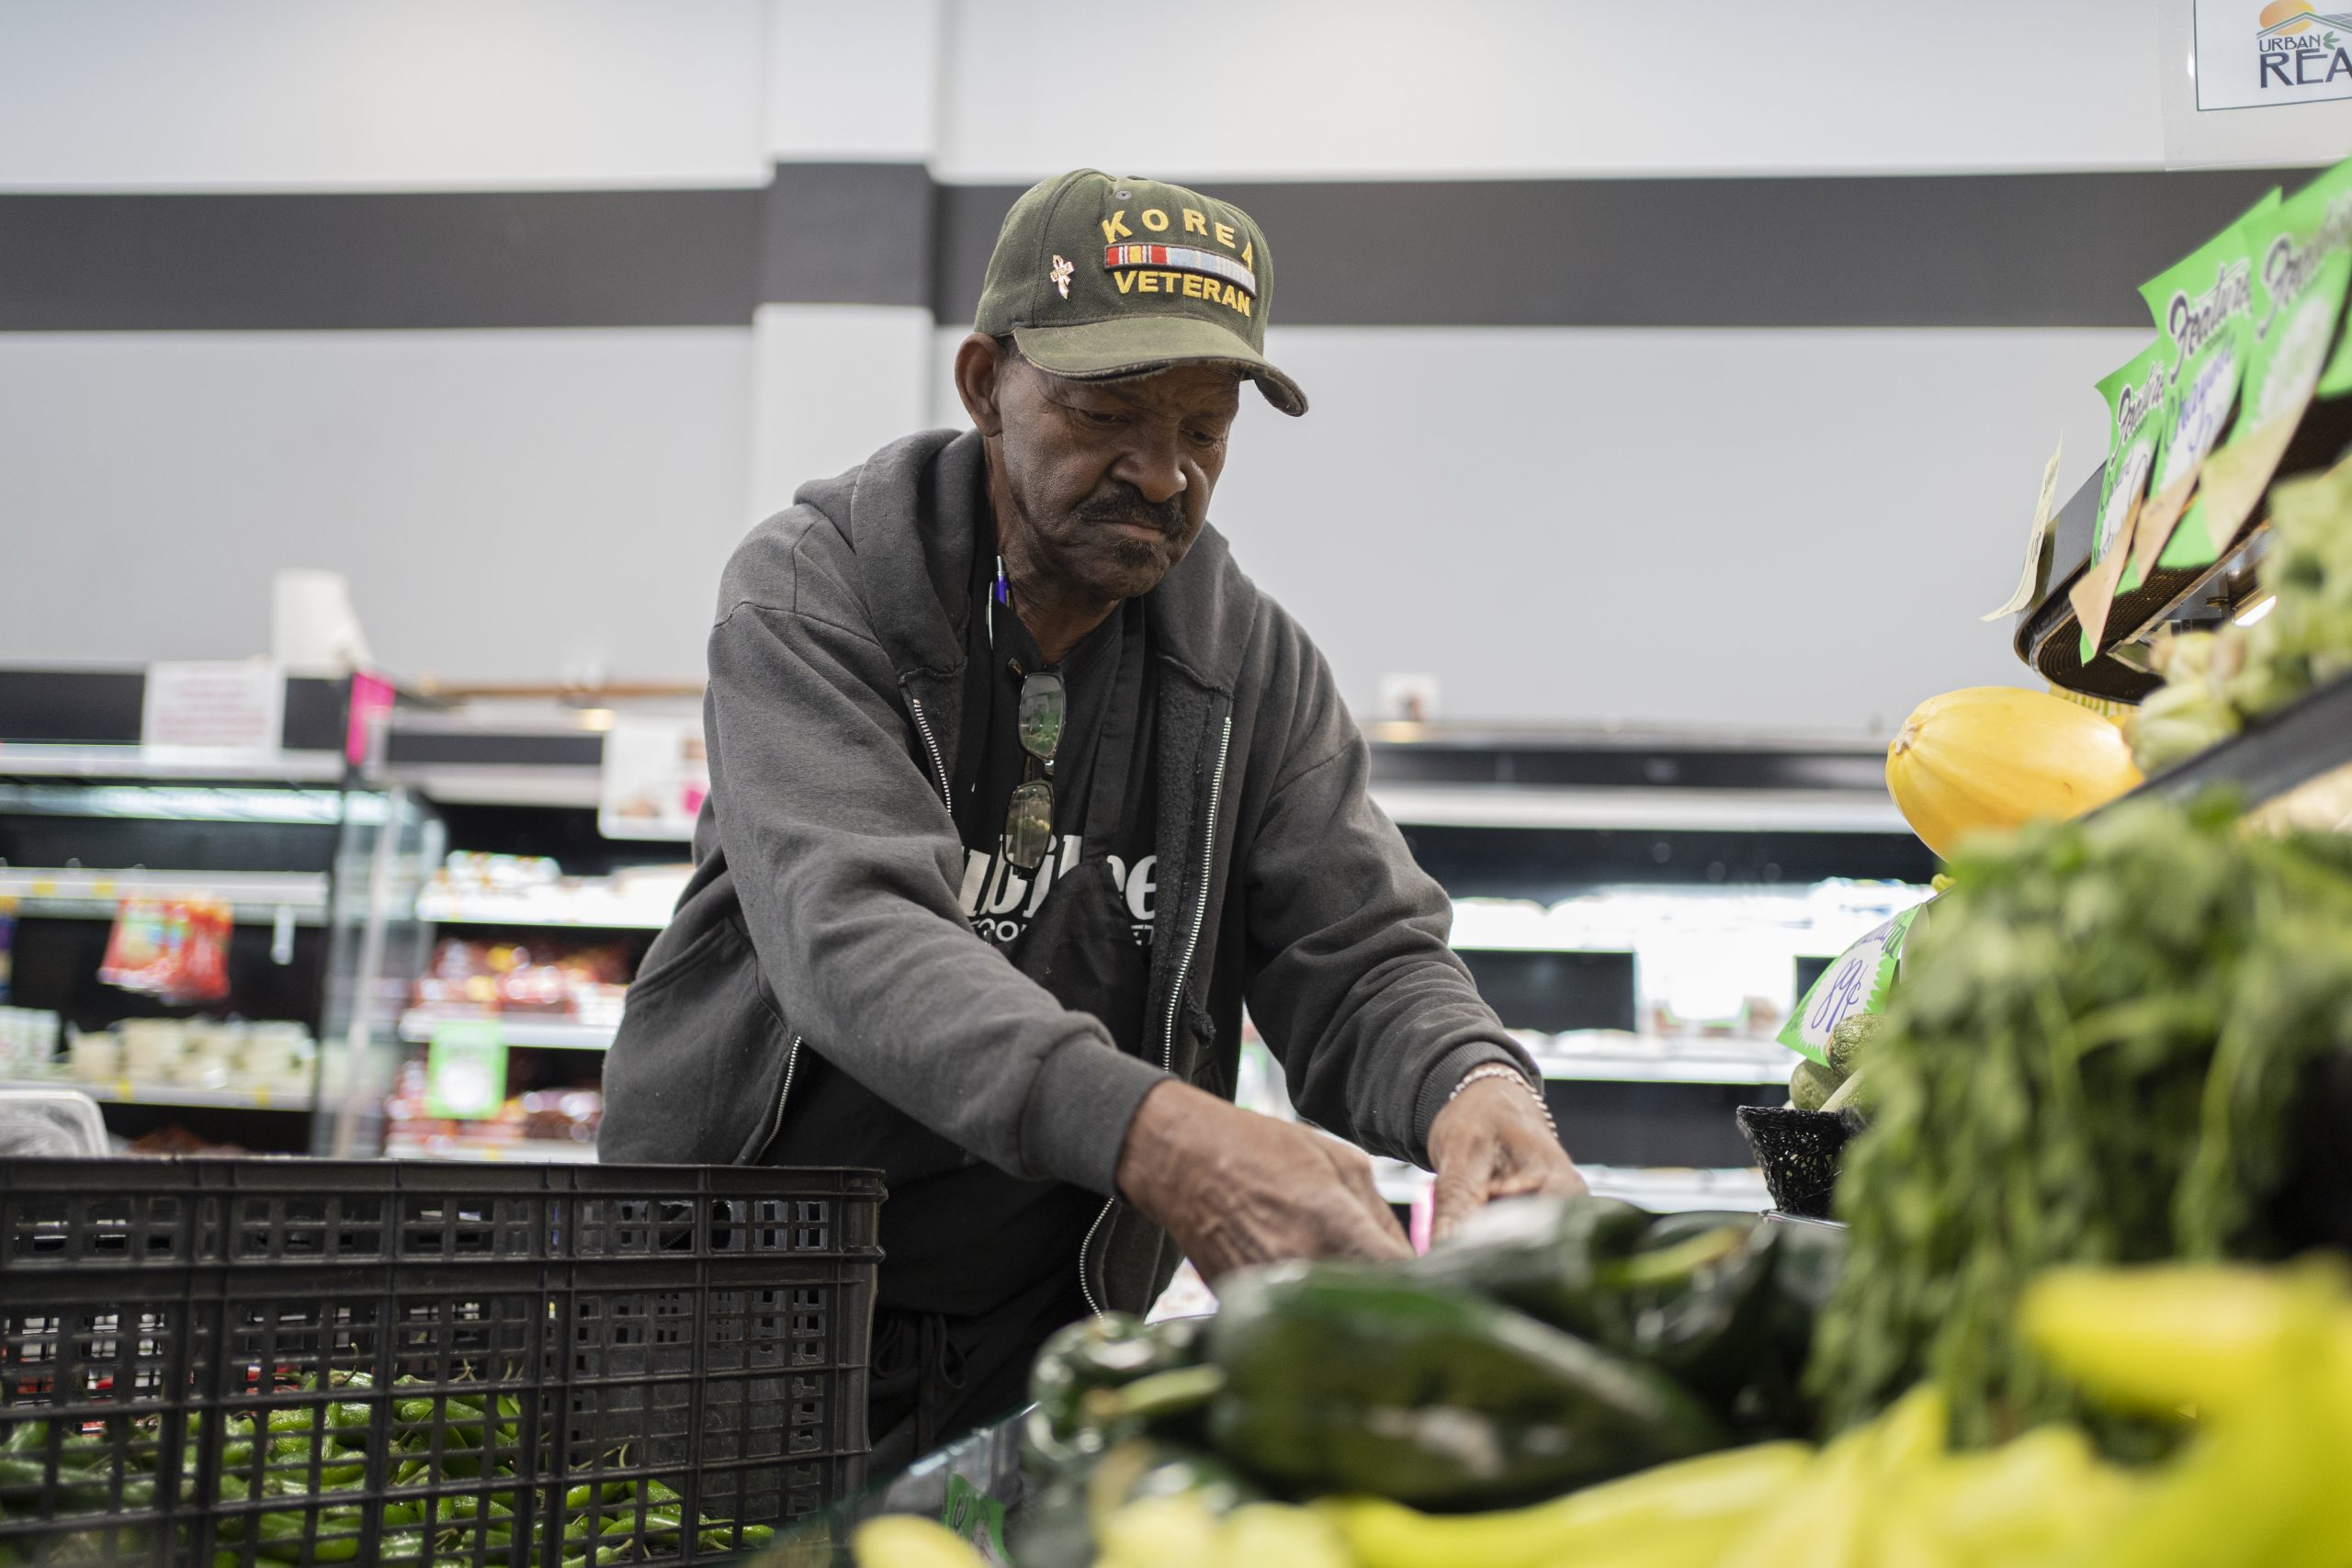 Non-profit grocery store Jubilee Market in Waco fills a gap for affordable, nutritious food